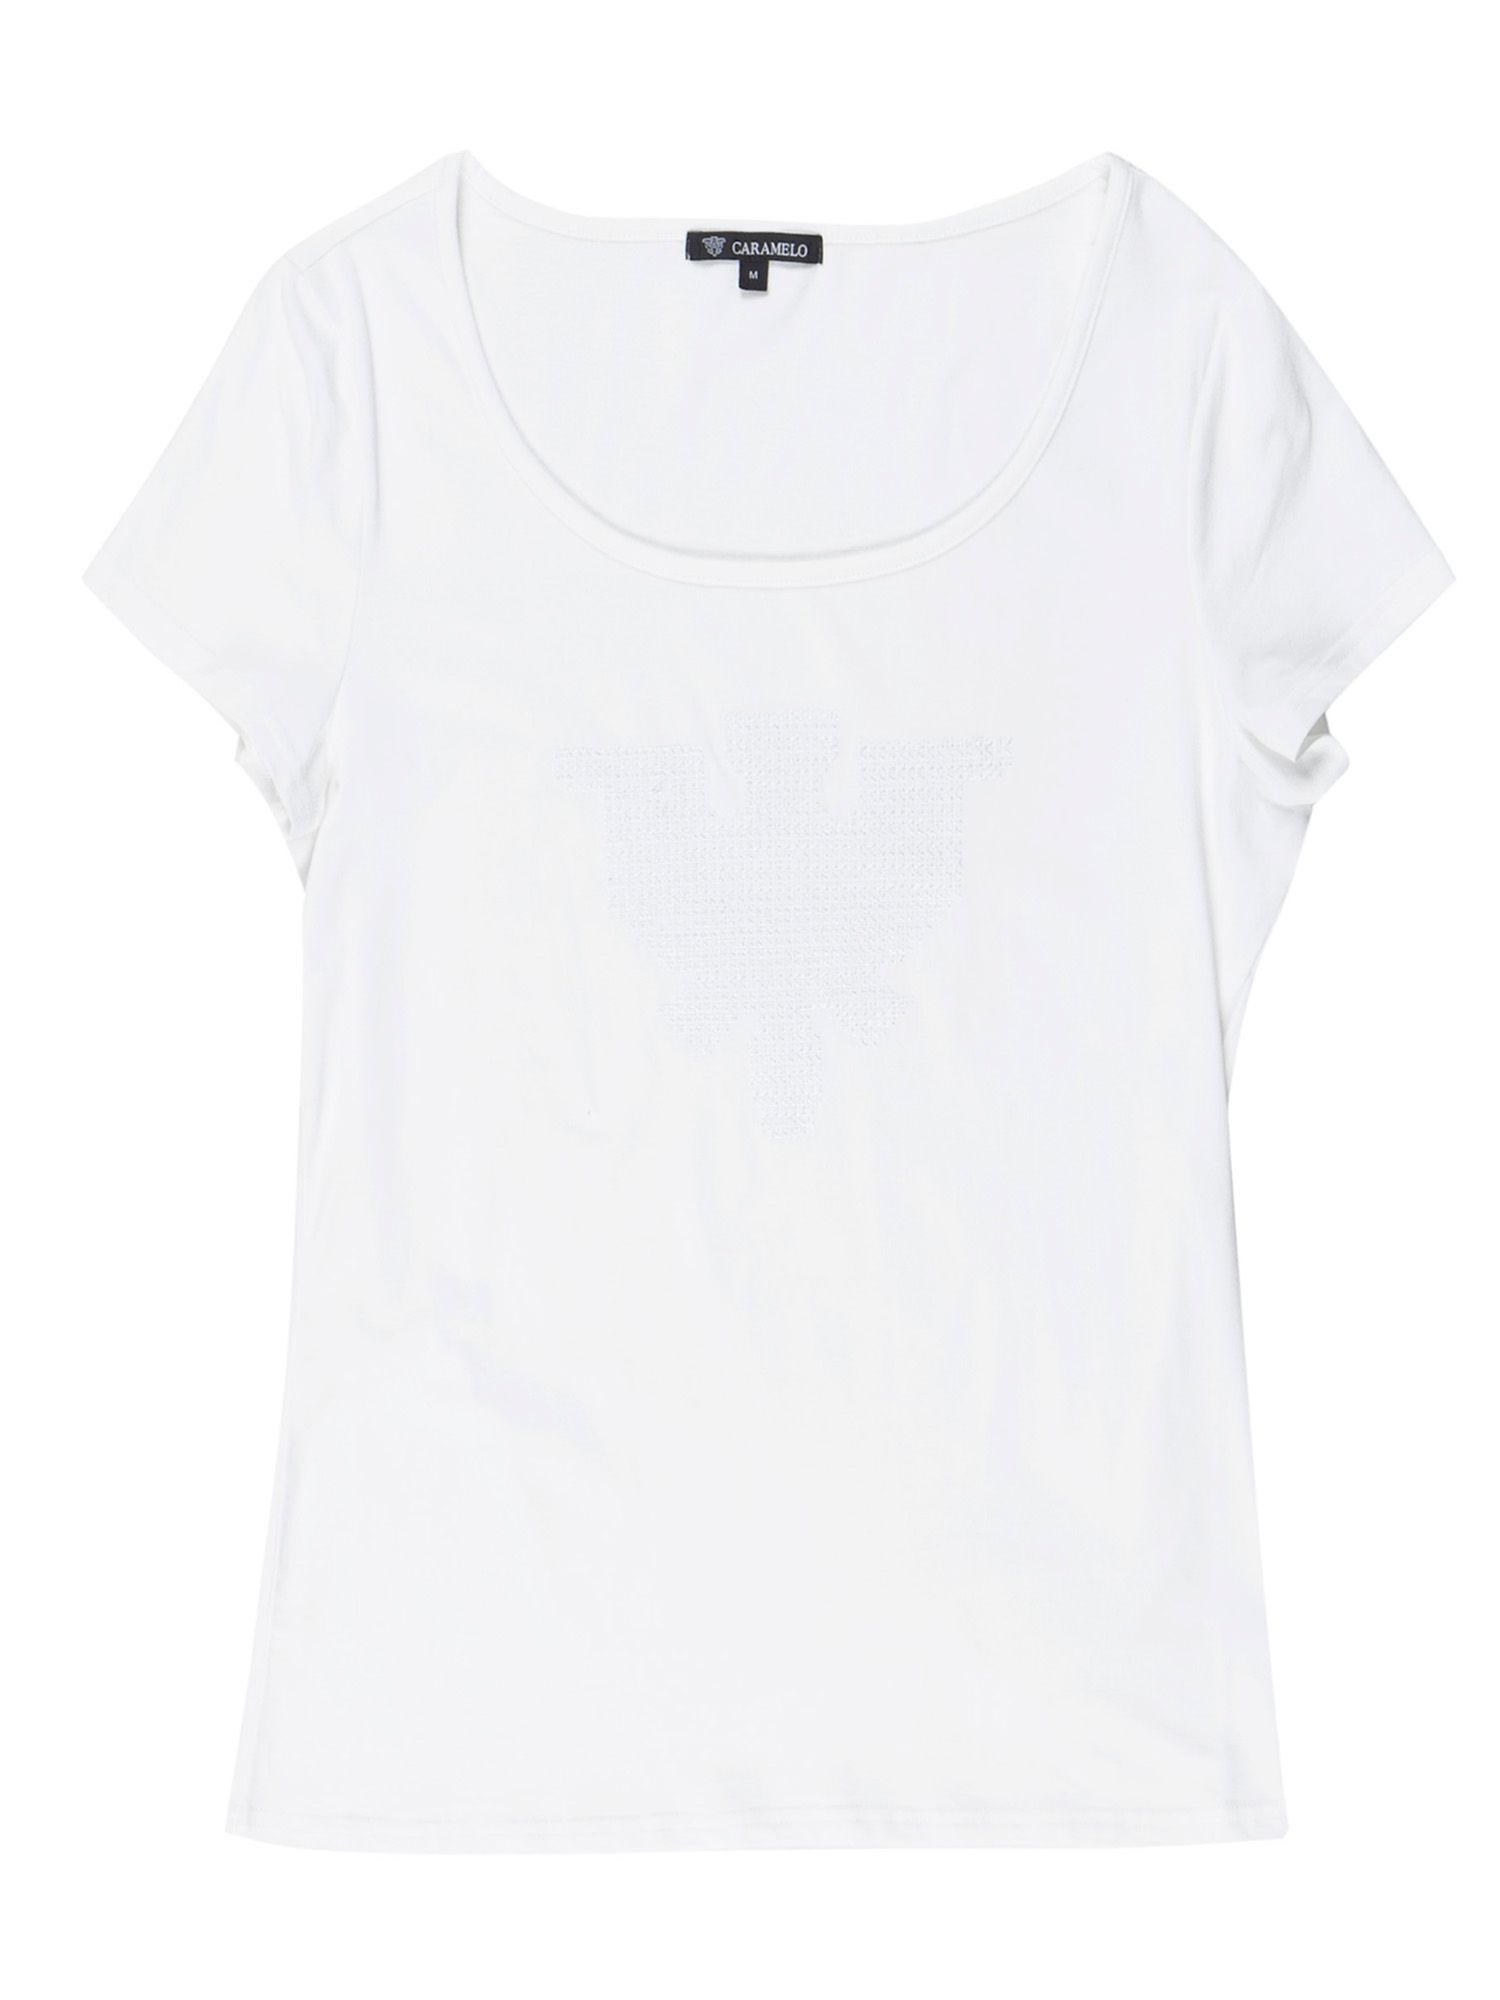 Caramelo Womens Caramelo Short sleeved t-shirt, product image